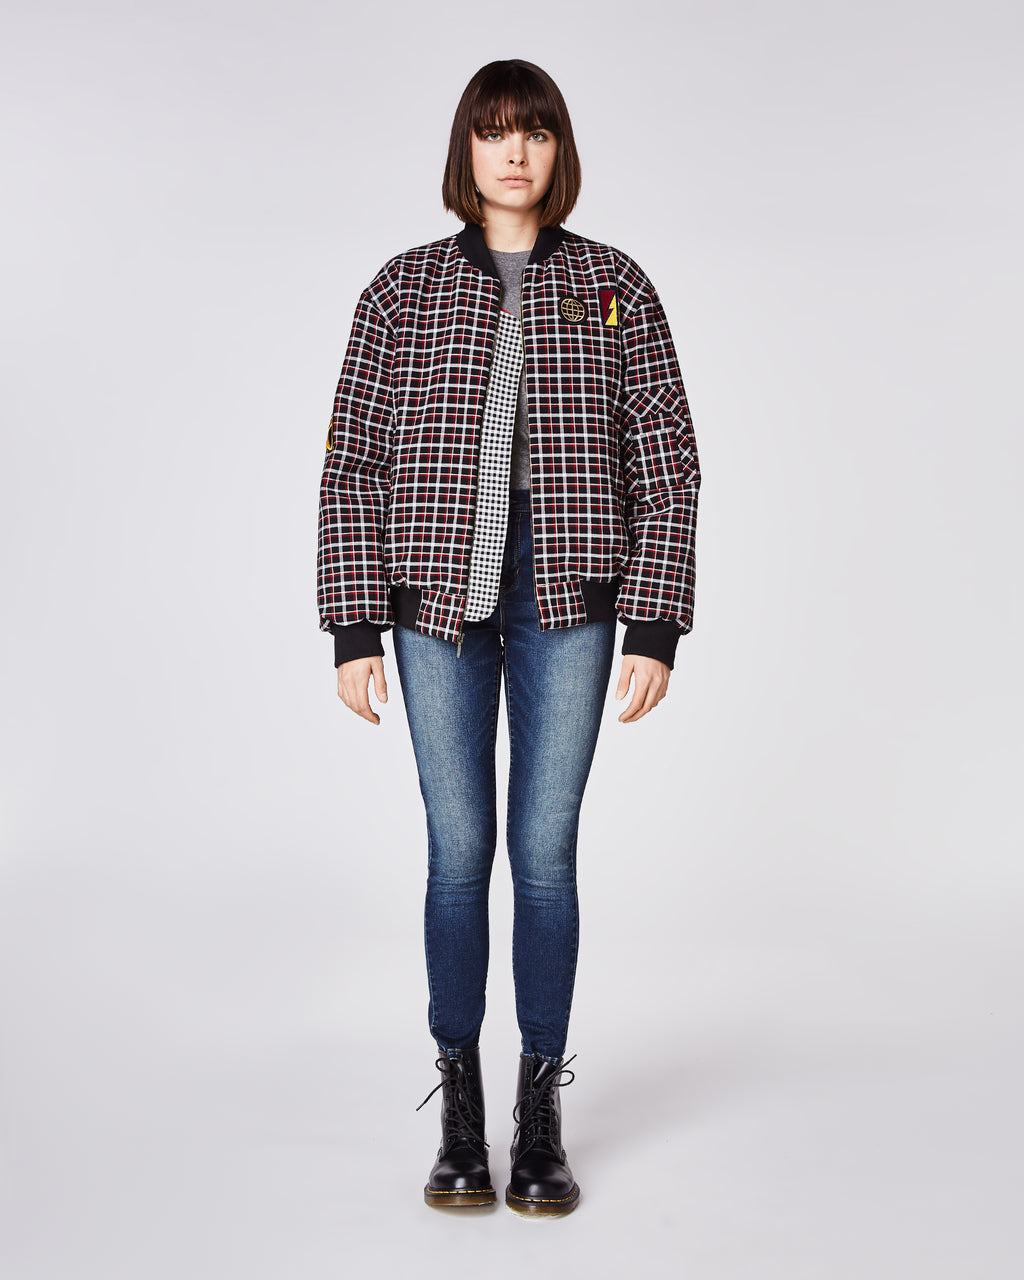 CO10116 - REVERSE PLAID EMB BOMBER JACKET - outerwear - jackets - With patch details, this plaid oversized bomber features a vibrant green lining and elastic cuffs.Finished with an embellished eagle on the back andexposed zipper for closure. Bomber is meant to fitoversized, for a smaller fit order a size down.